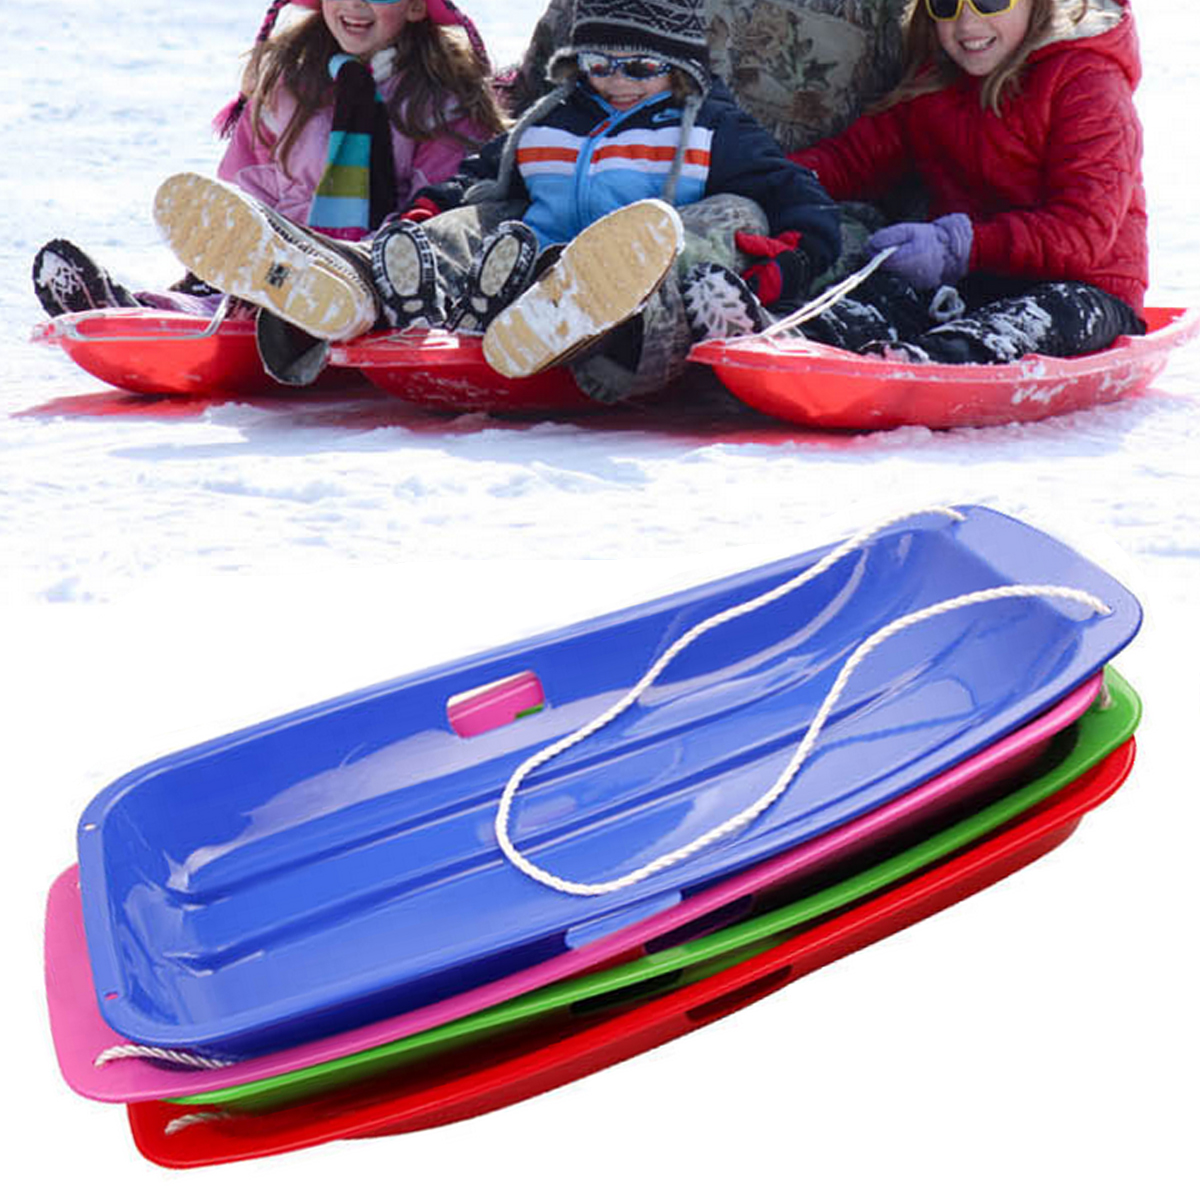 Plastic Snow Sled Boat Board Sledge Skiing Toboggan Outdoor Kid Children Gifts by